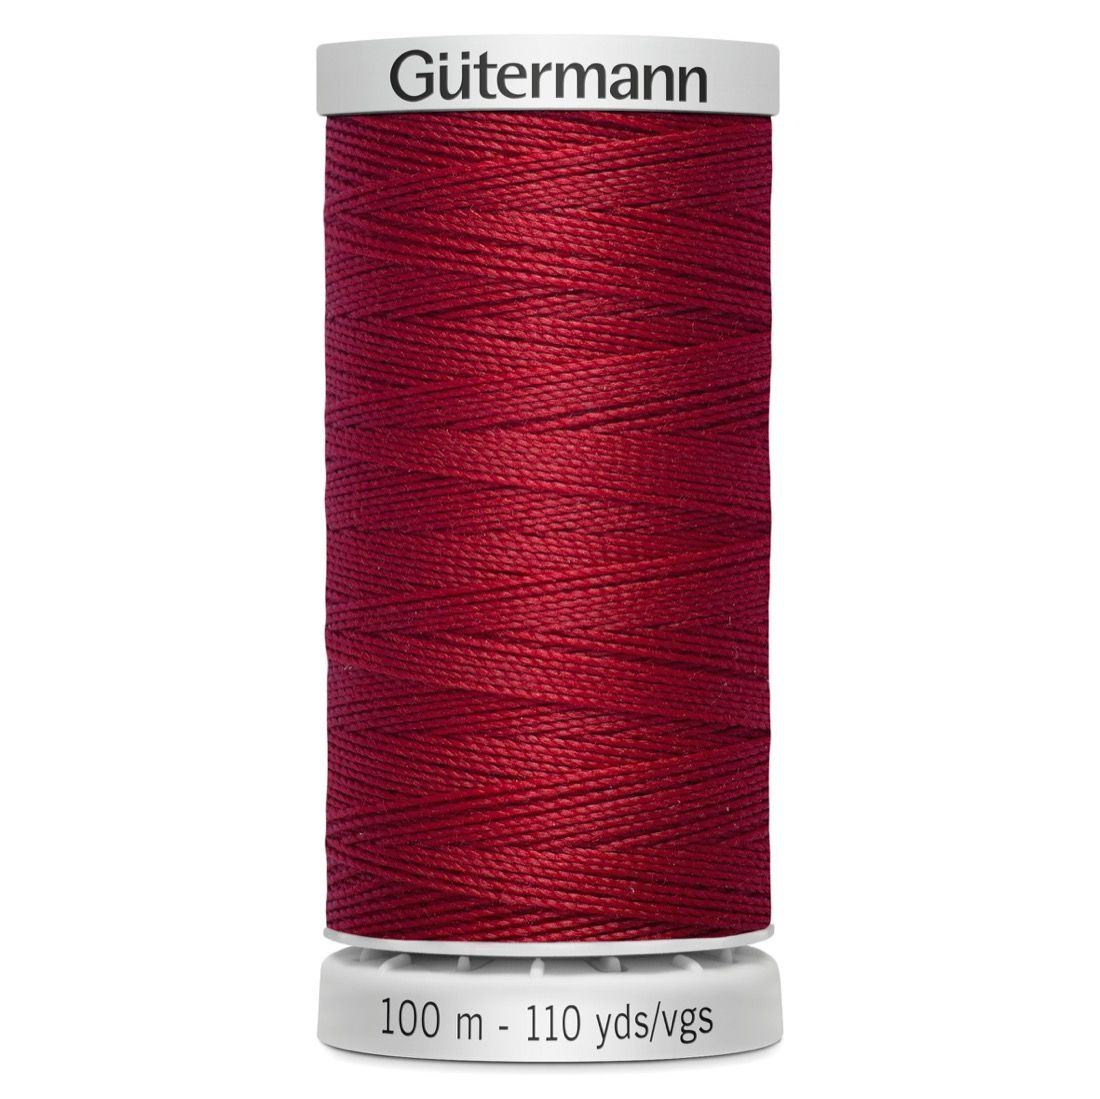 Gutermann Extra Strong Upholstery Thread - 100m - 46